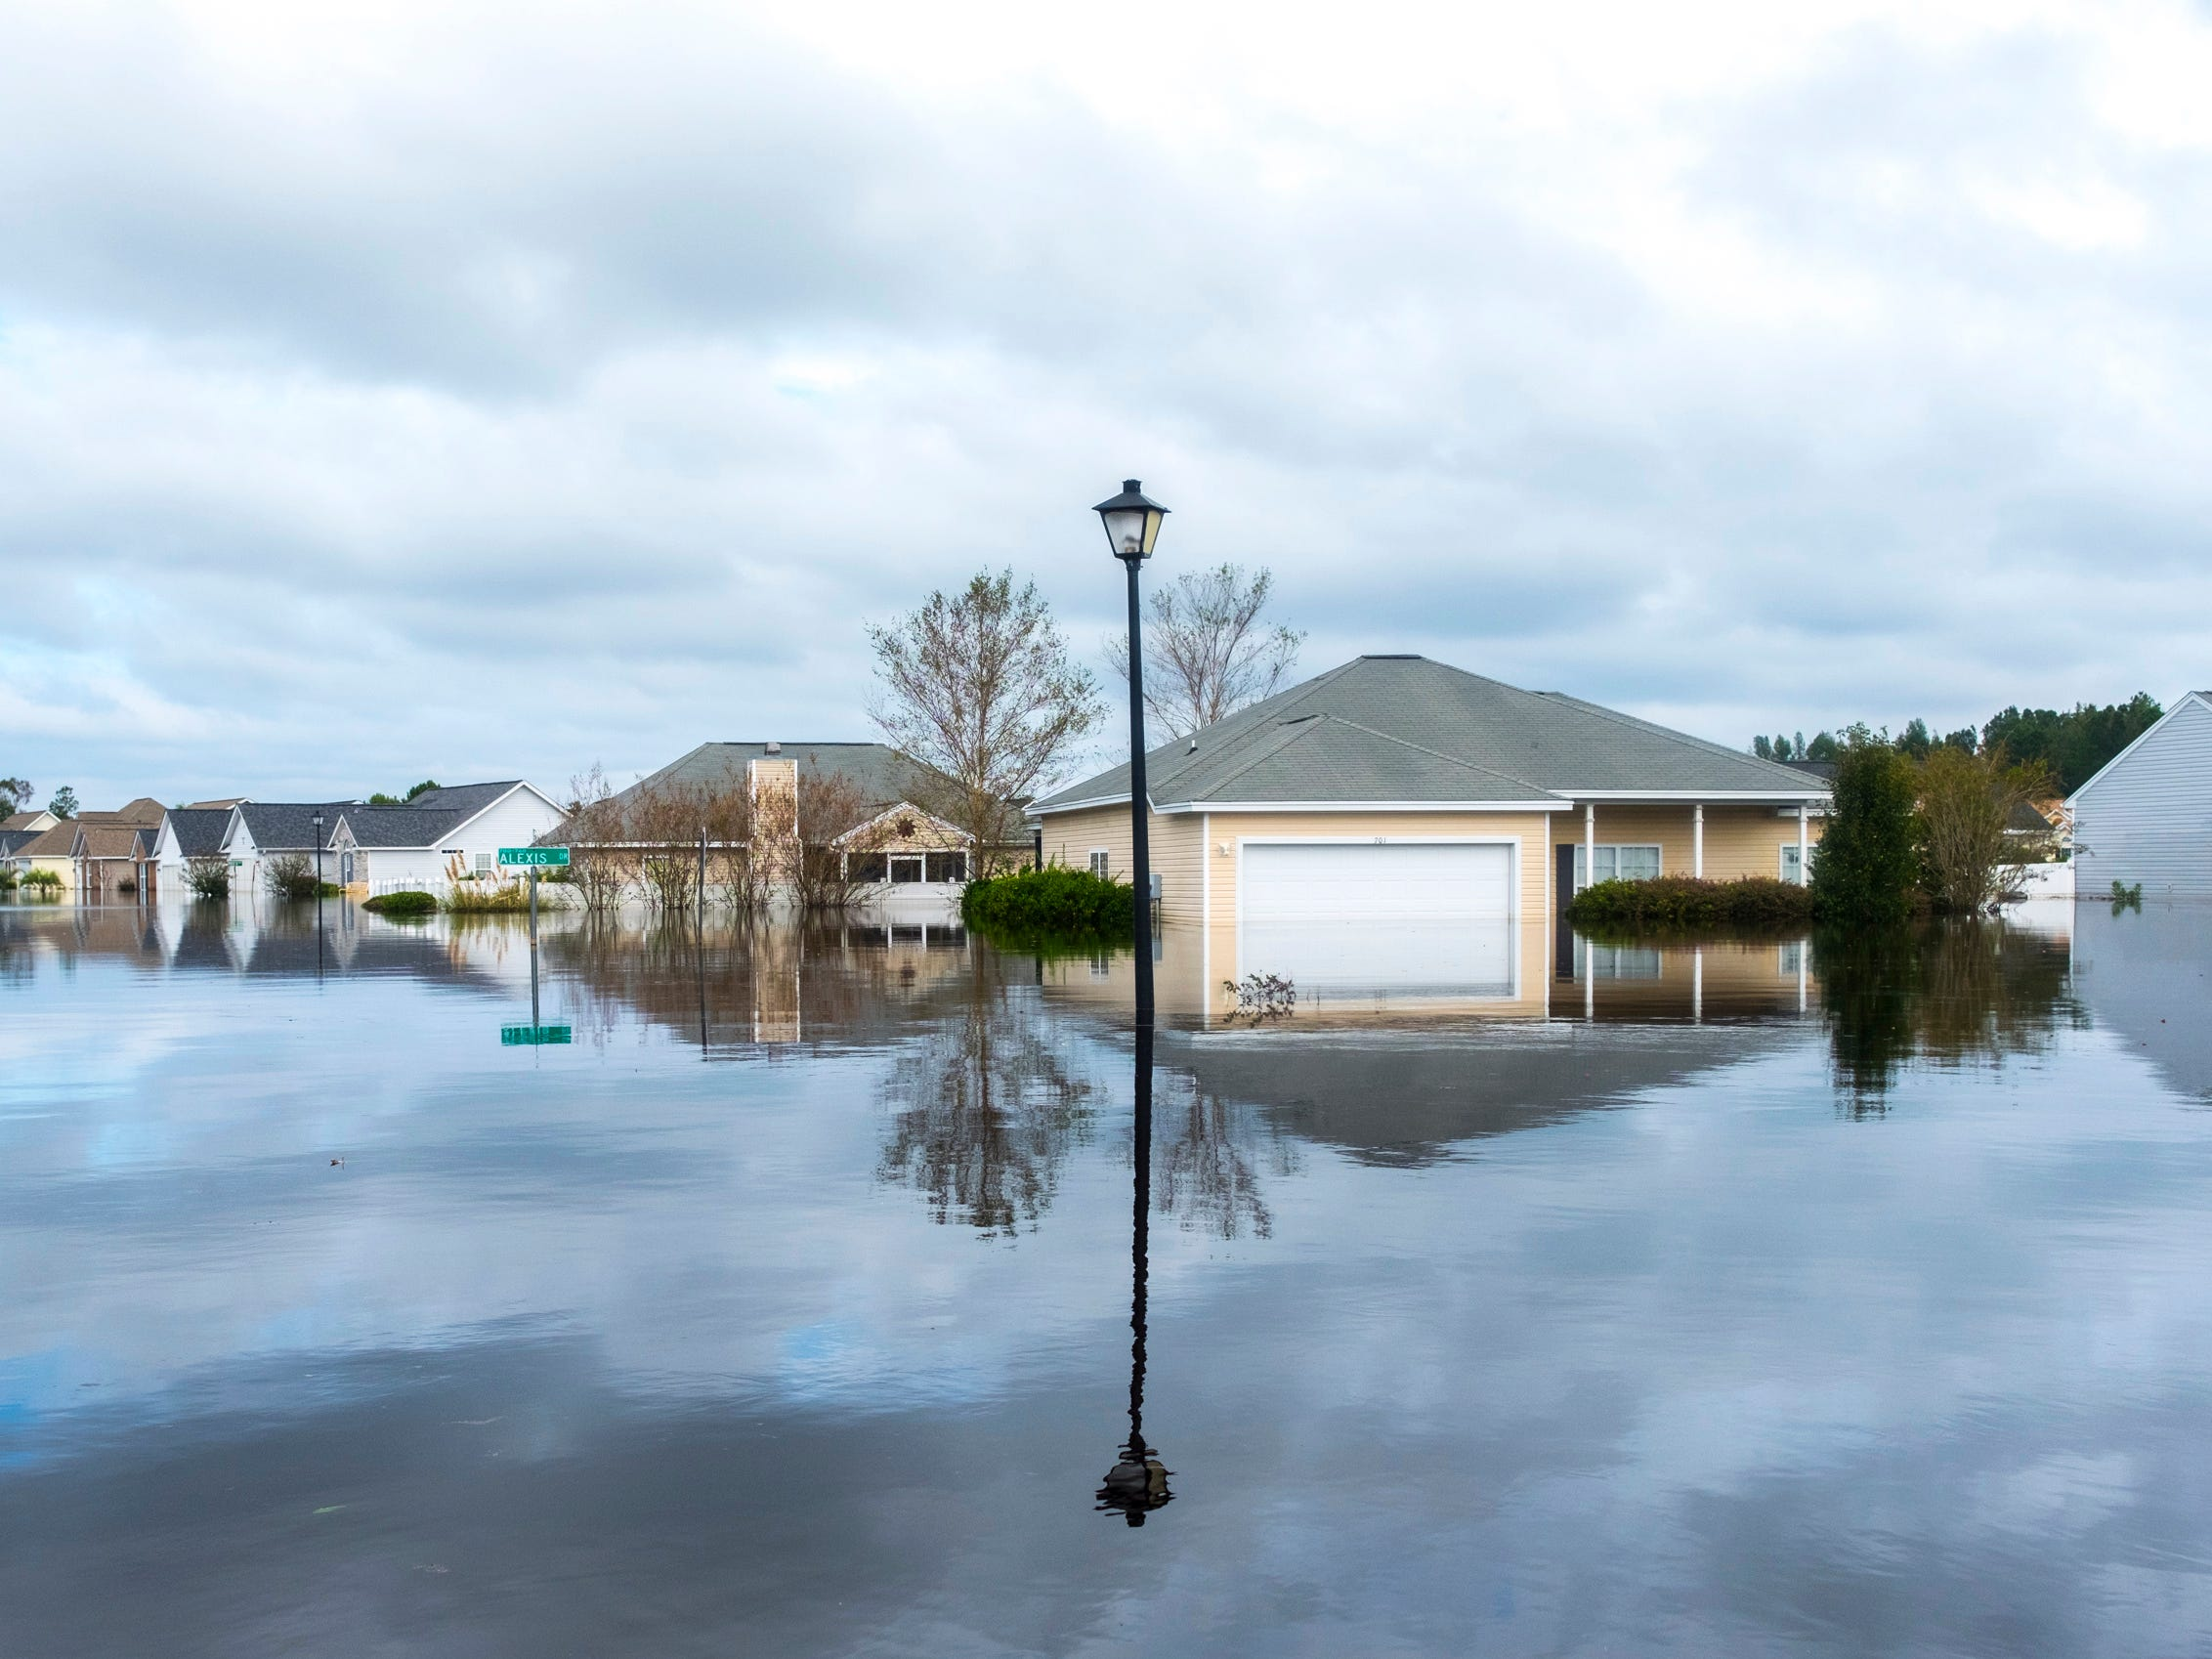 The Polo Farms neighborhood off S.C. Highway 905 is largely underwater, on Monday, Sept. 24, 2018, in Longs, S.C., due to Hurricane Florence's deluge.